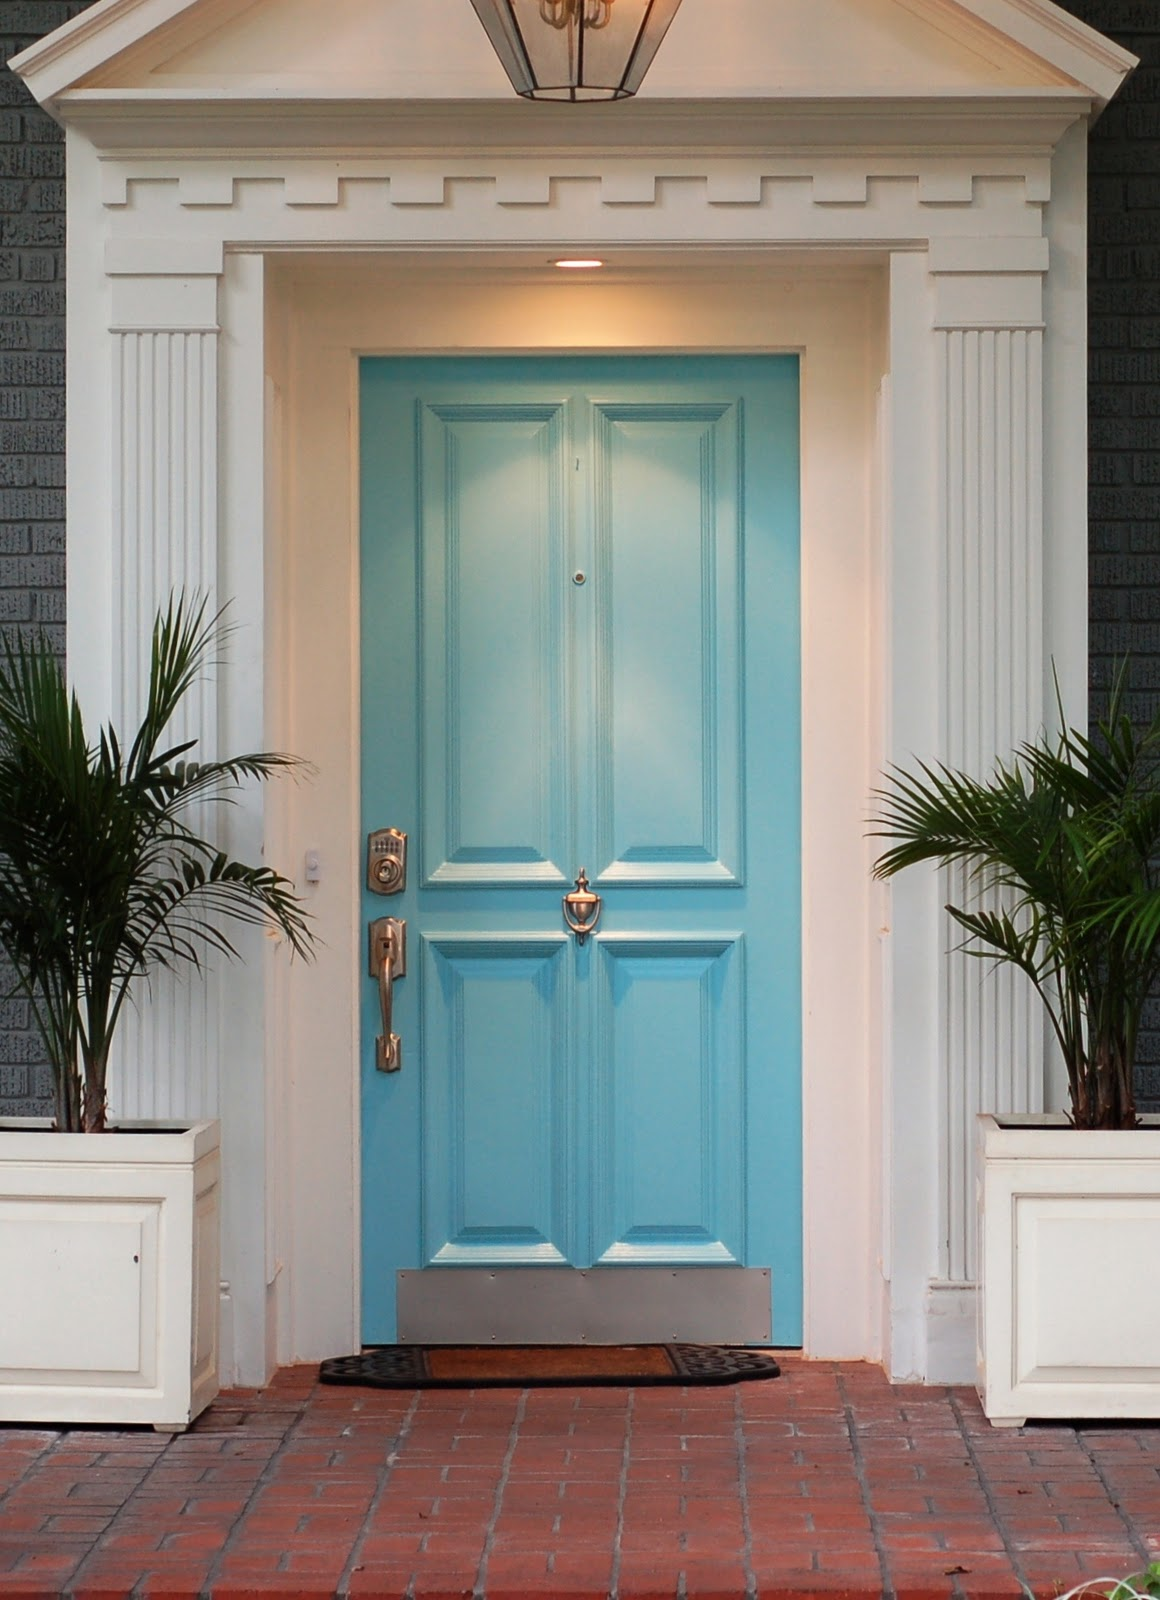 North dallas real estate front door colors to help sell for House front door ideas